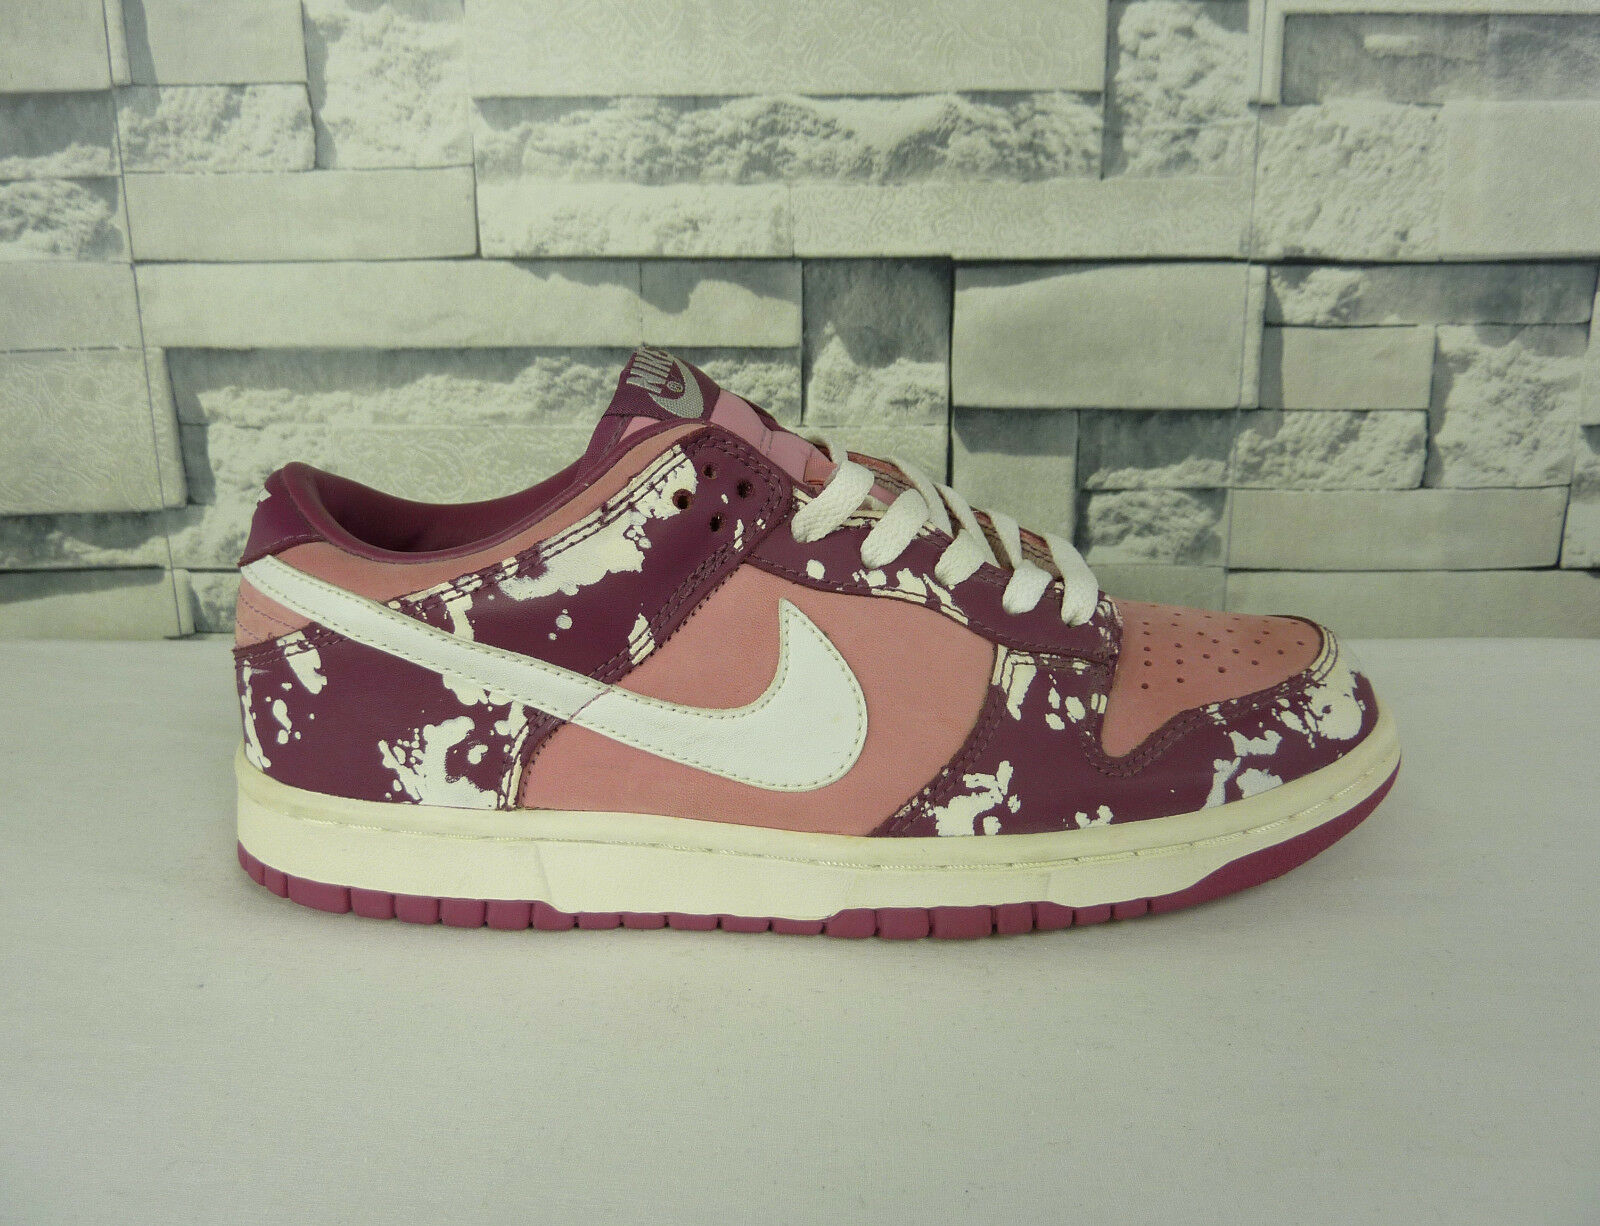 NEW NIKE DUNK LOW PREMIUM SPLATTER SNEAKERS DEADSTOCK SIZE 8.5 US - 10 US